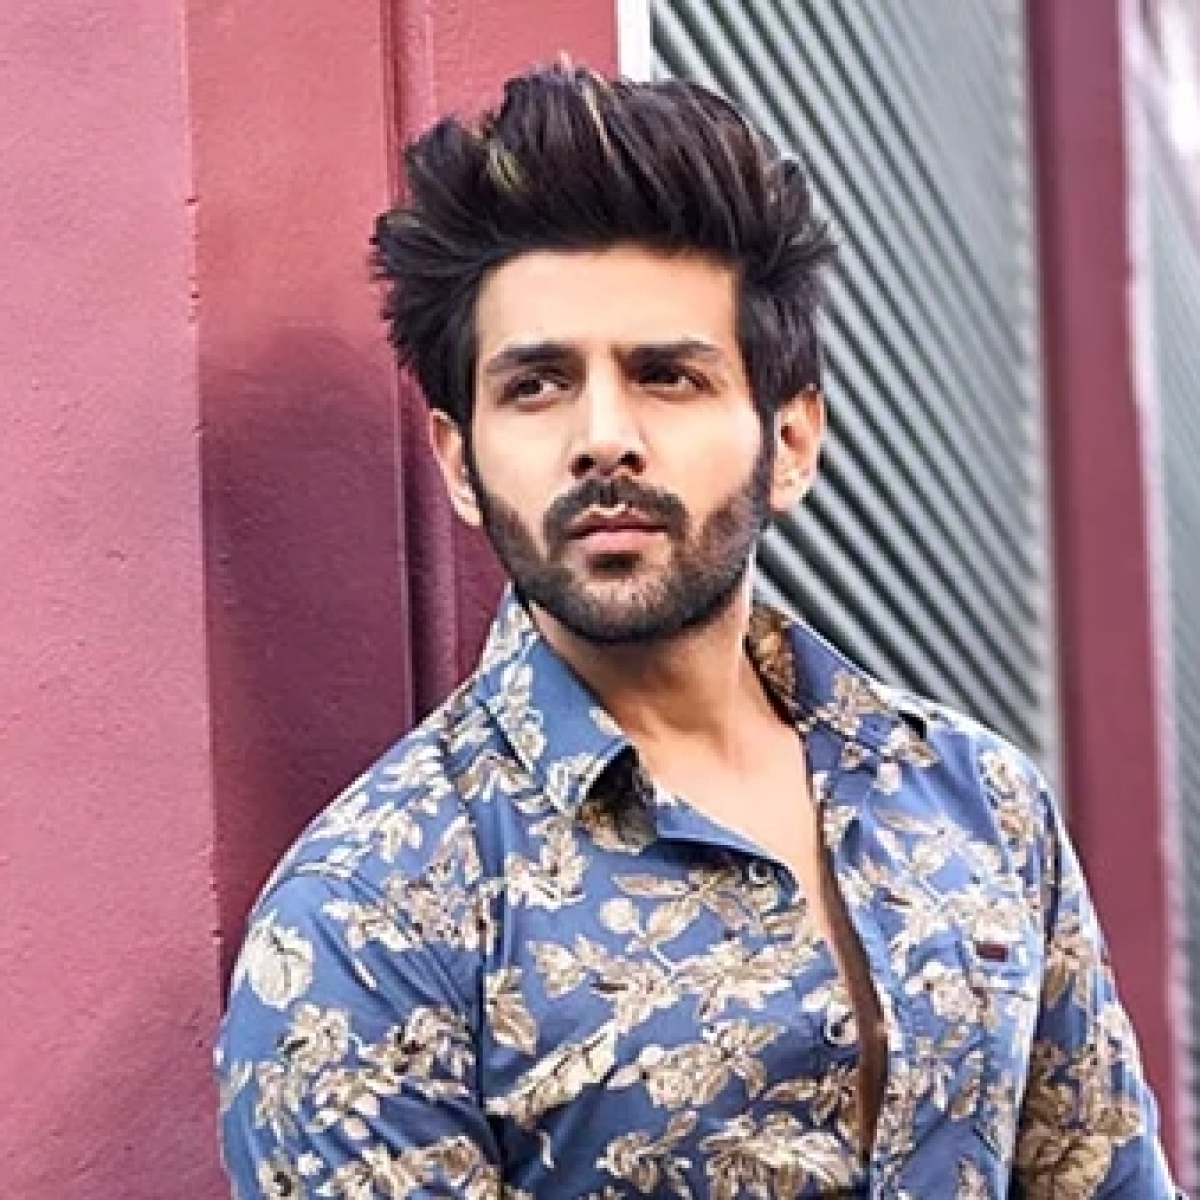 After a successful monologue on social distancing, Kartik Aaryan donates Rs 1 crore to PM-Cares fund